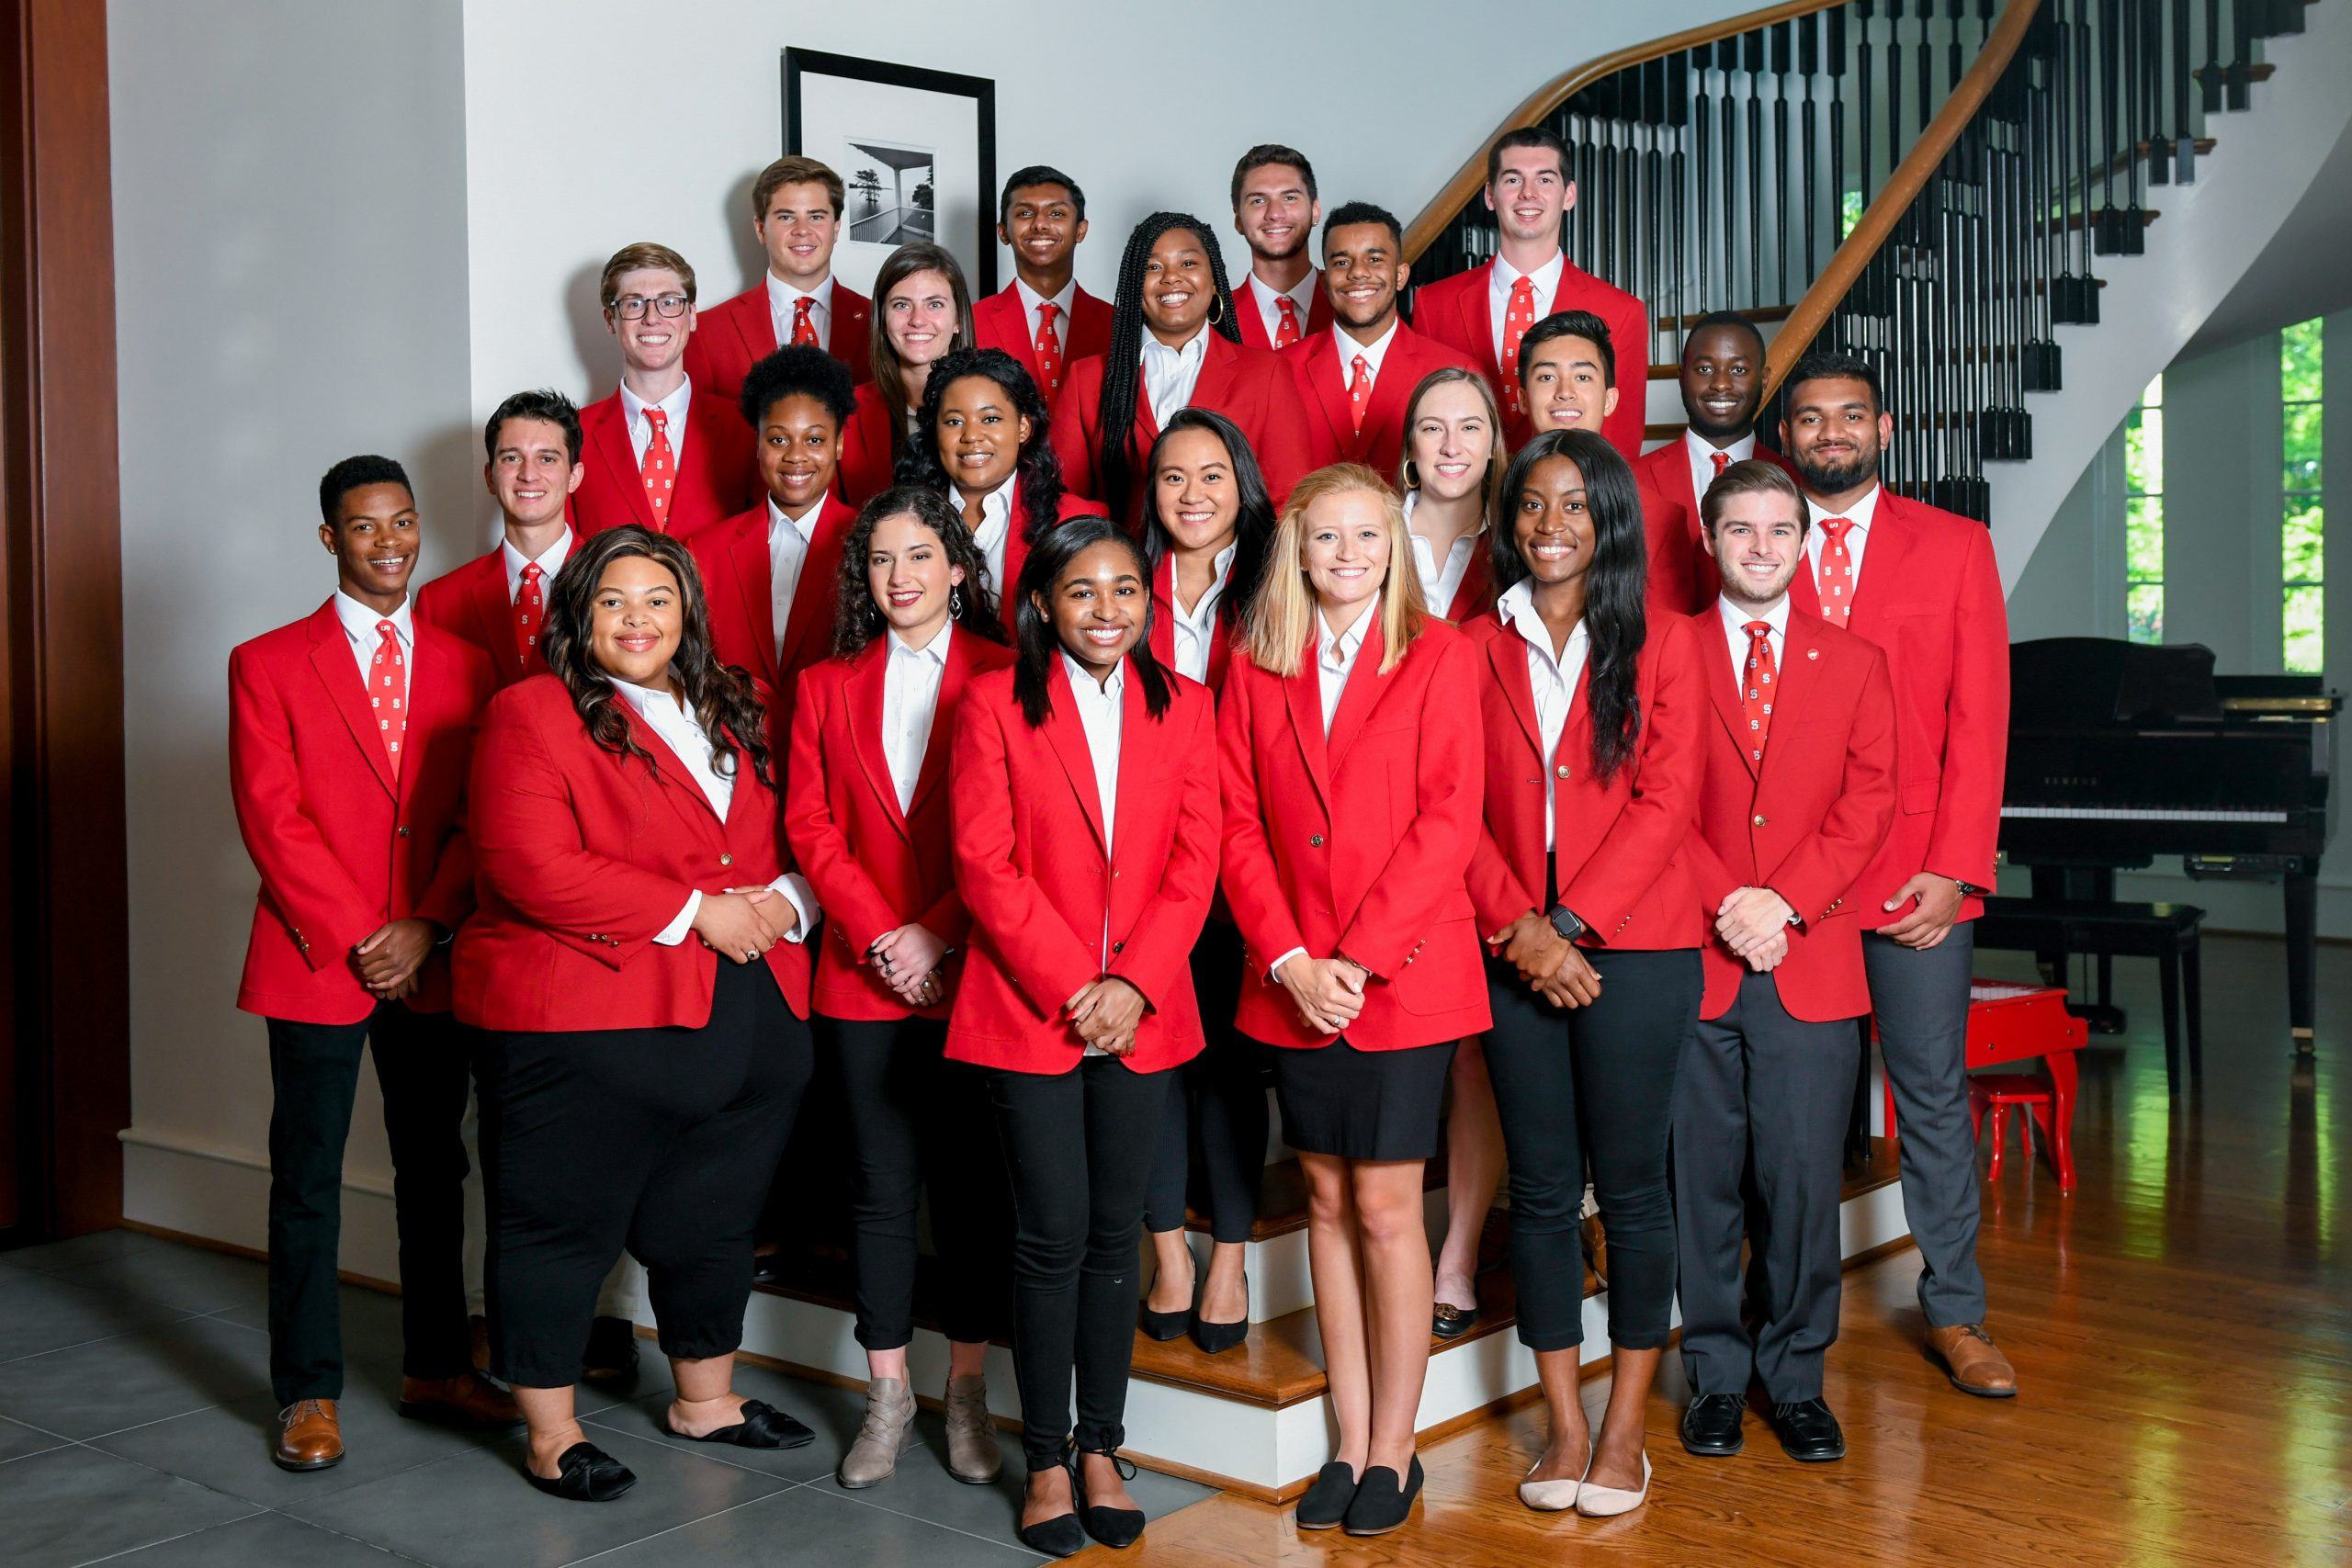 The 2019-2020 Chancellor's Aides take a group photo on a staircase.